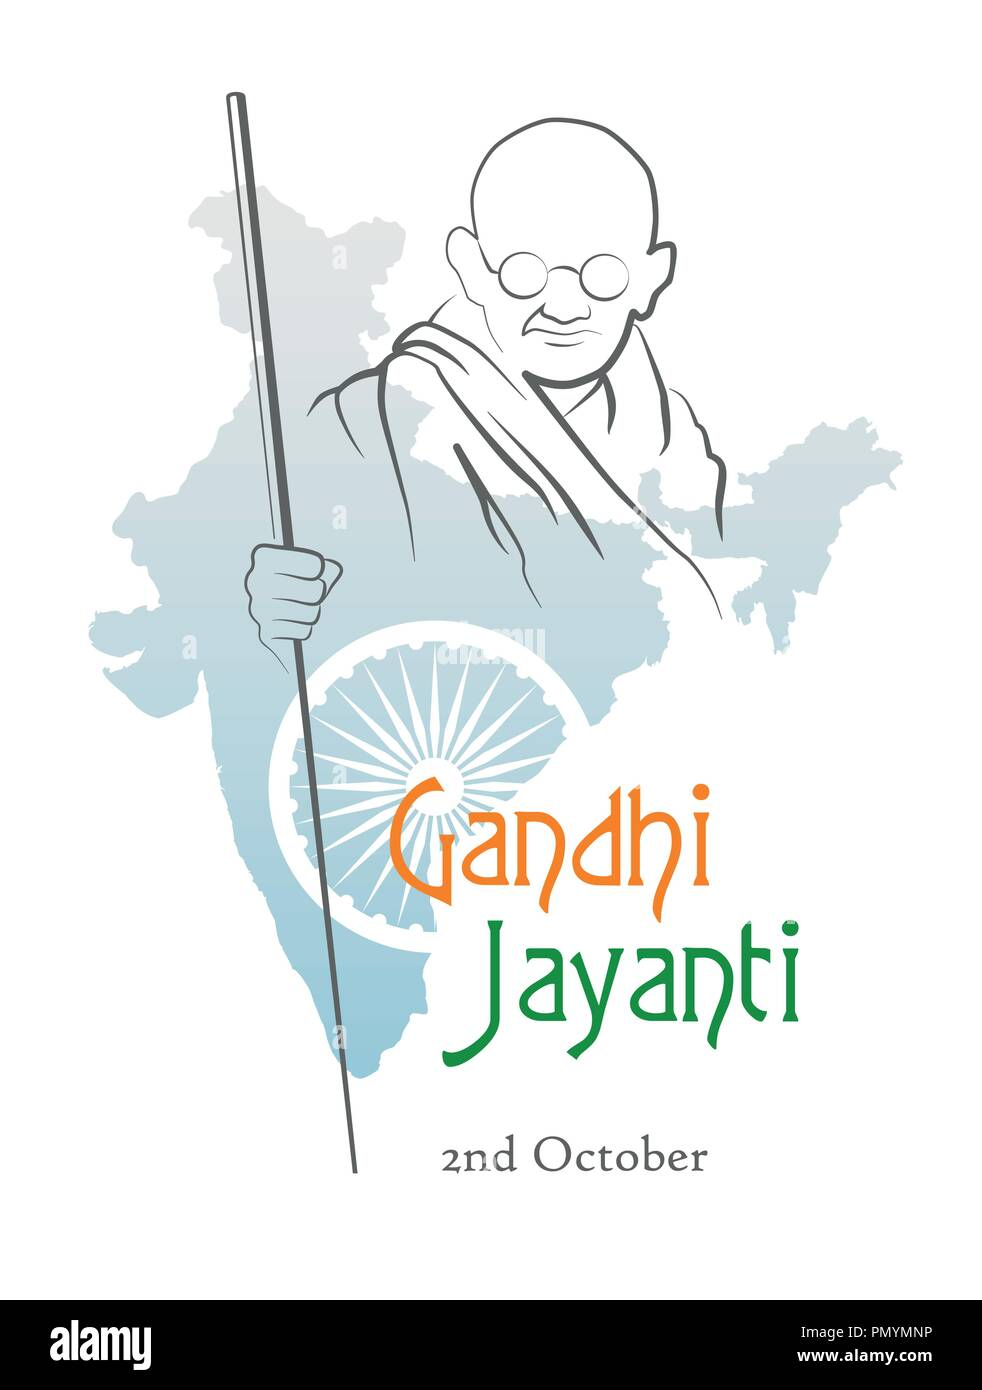 October 2. Gandhi Jayanti. India. Abstract sketch of Mahatma Gandhi with Ashoka Chakra on the silhouette of the map of India. Vector illustration. - Stock Image